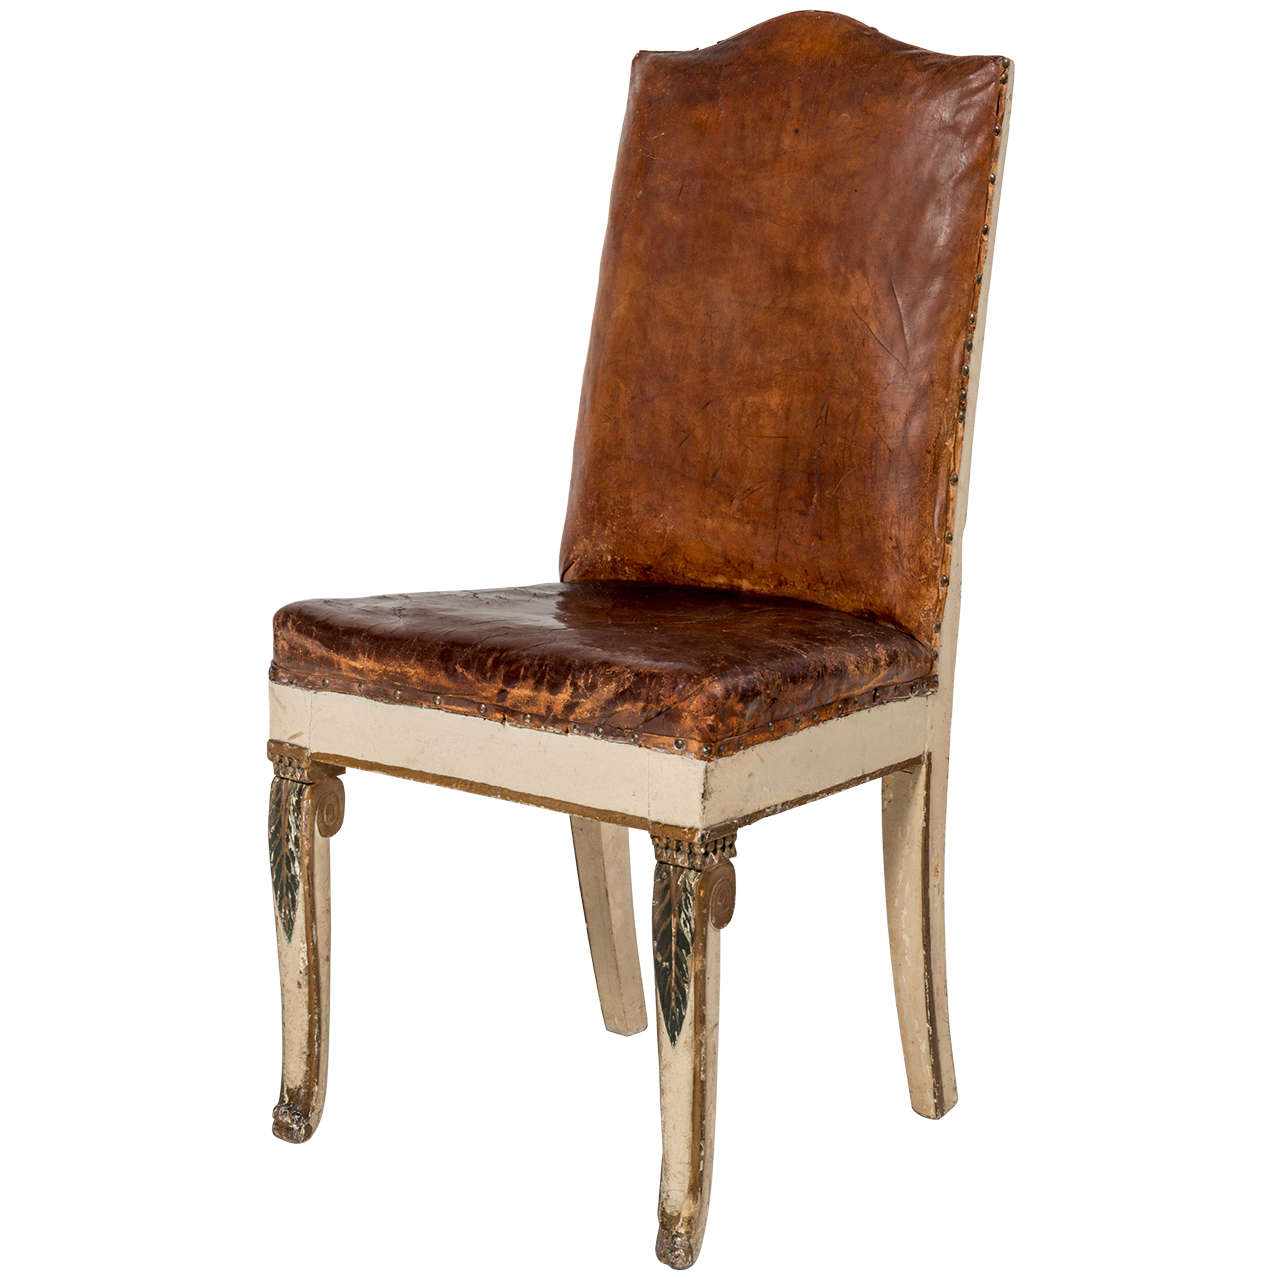 Rare Empire Desk Chair At 1stdibs